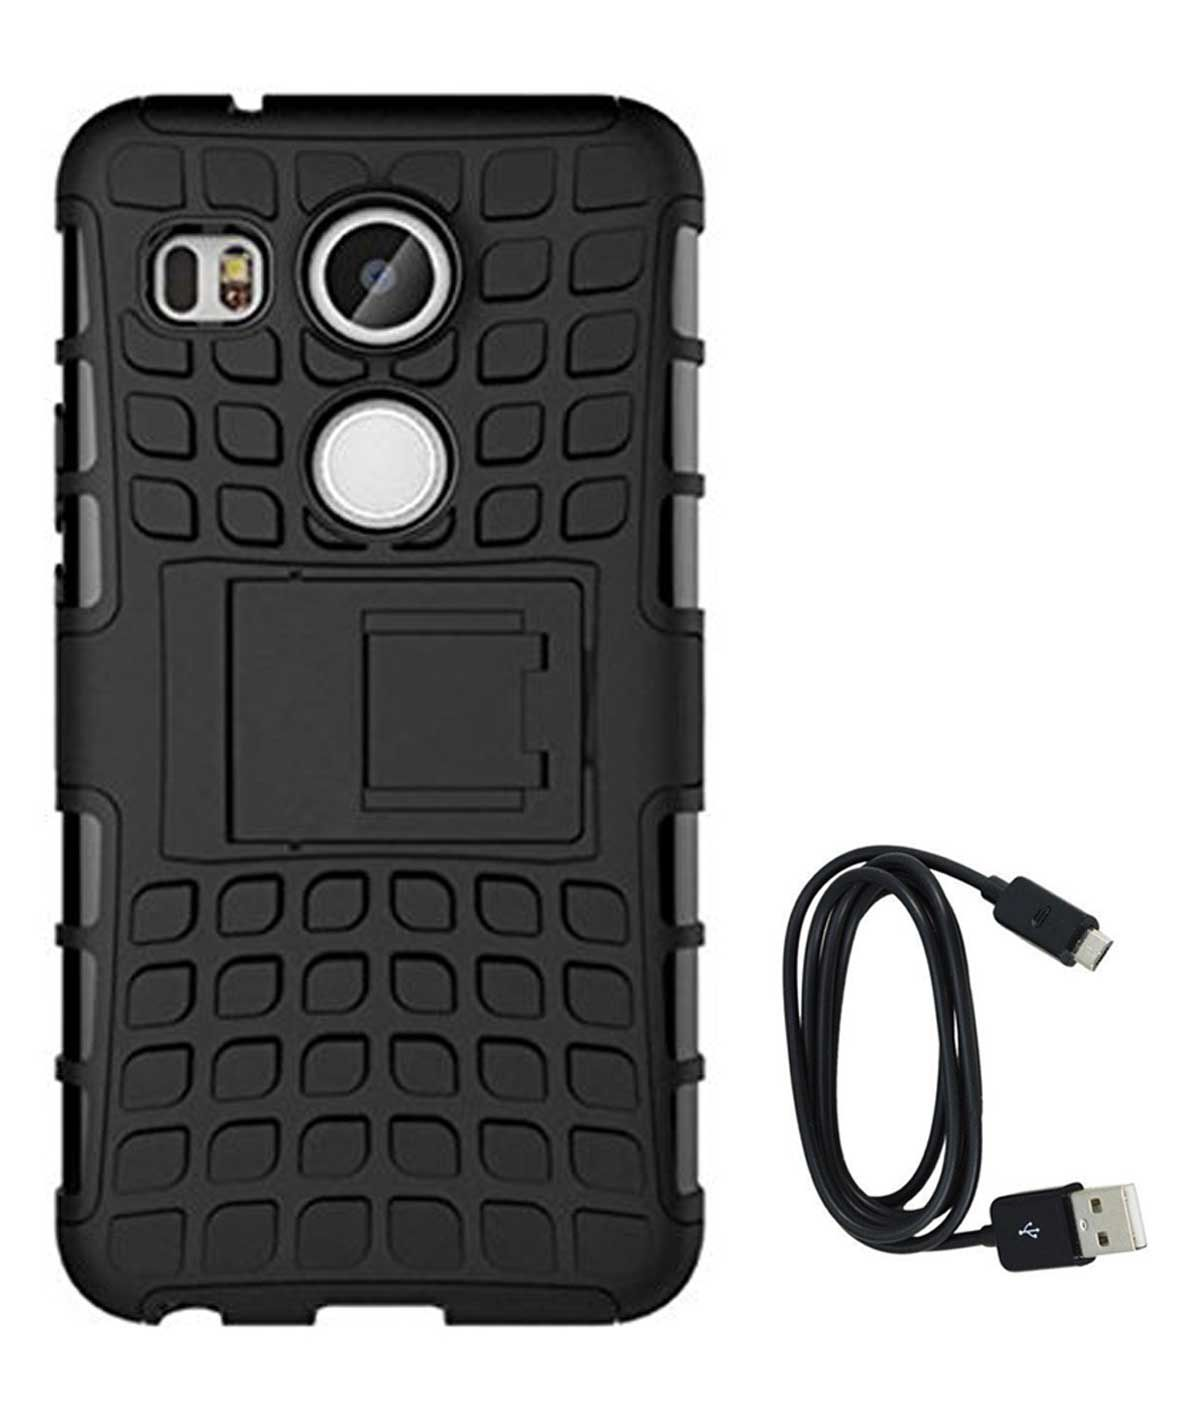 TBZ Hard Grip Rubberized Kickstand Back Cover Case for LG Google Nexus 5 with Data Cable -Black